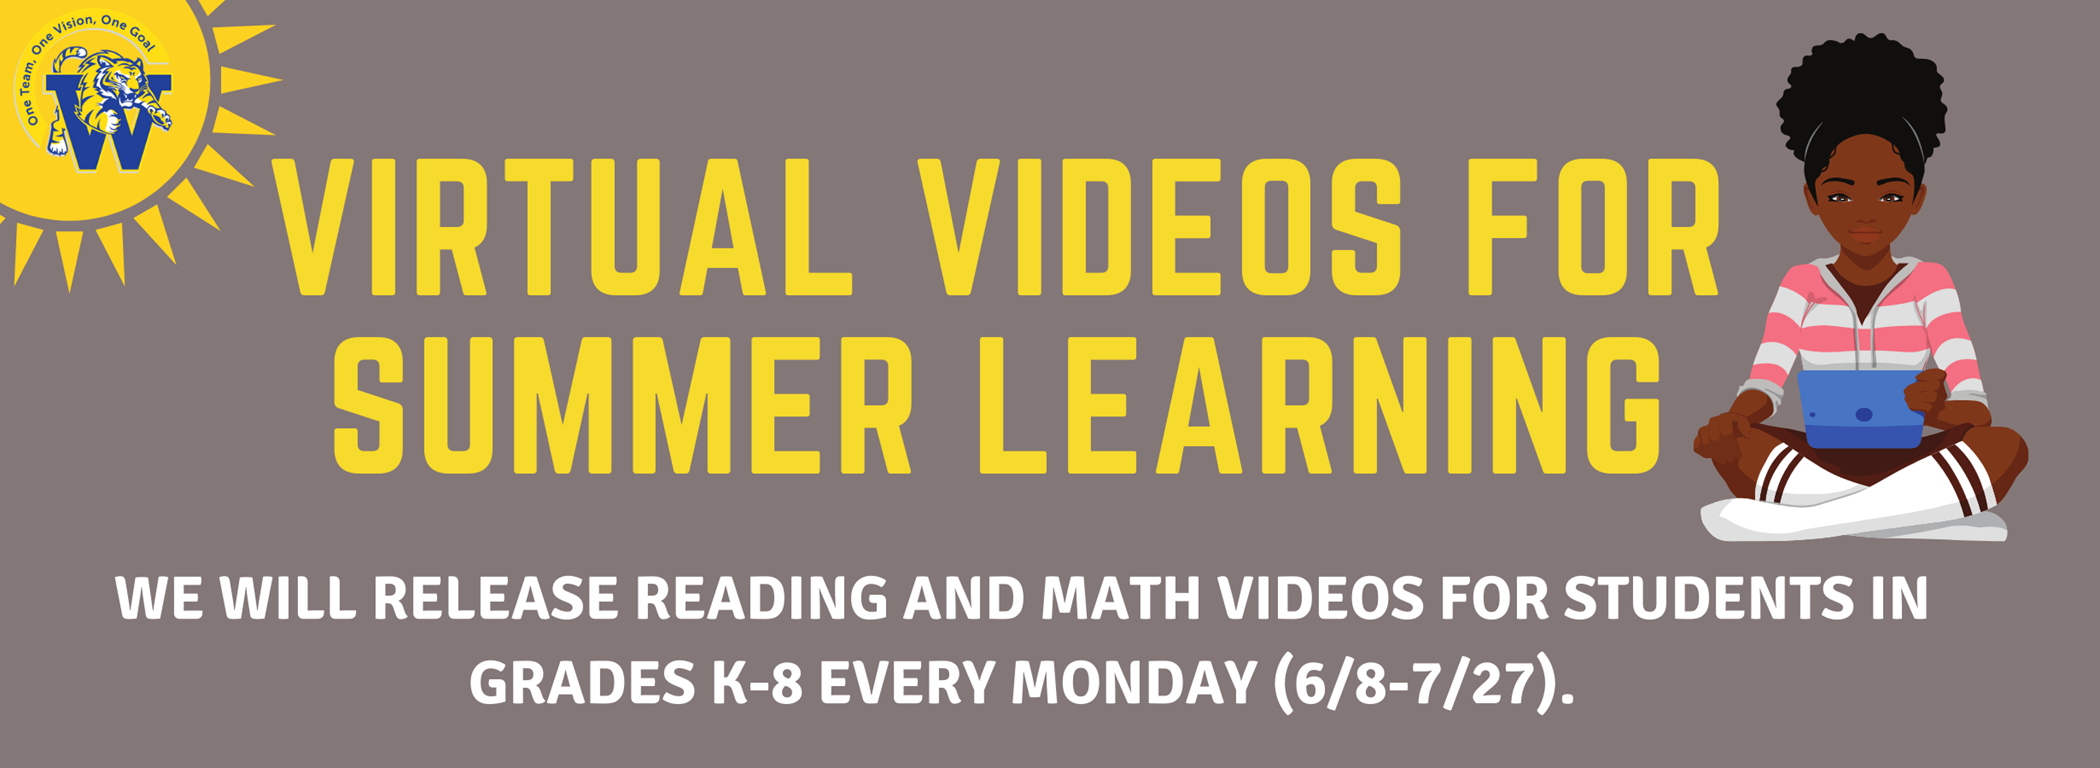 Virtual Videos for Summer Learning